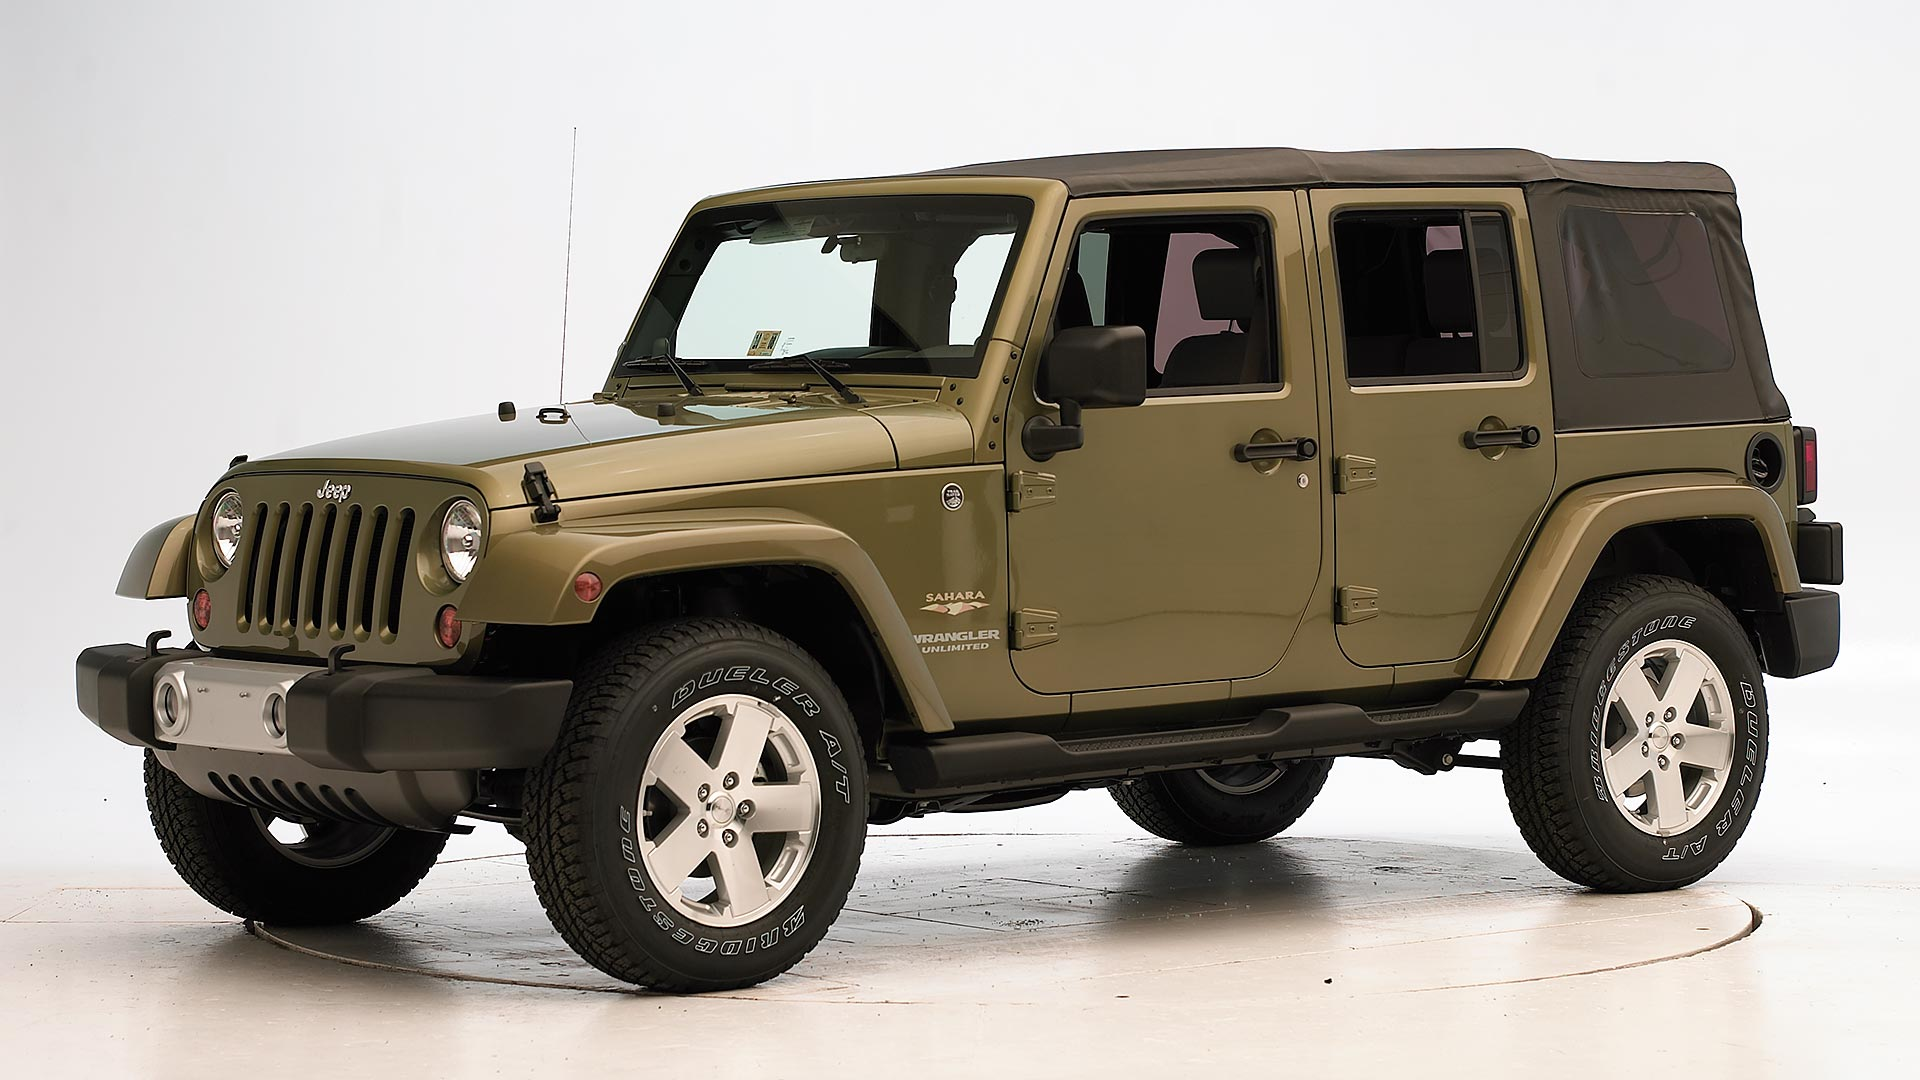 2008 Jeep Wrangler 4-door SUV